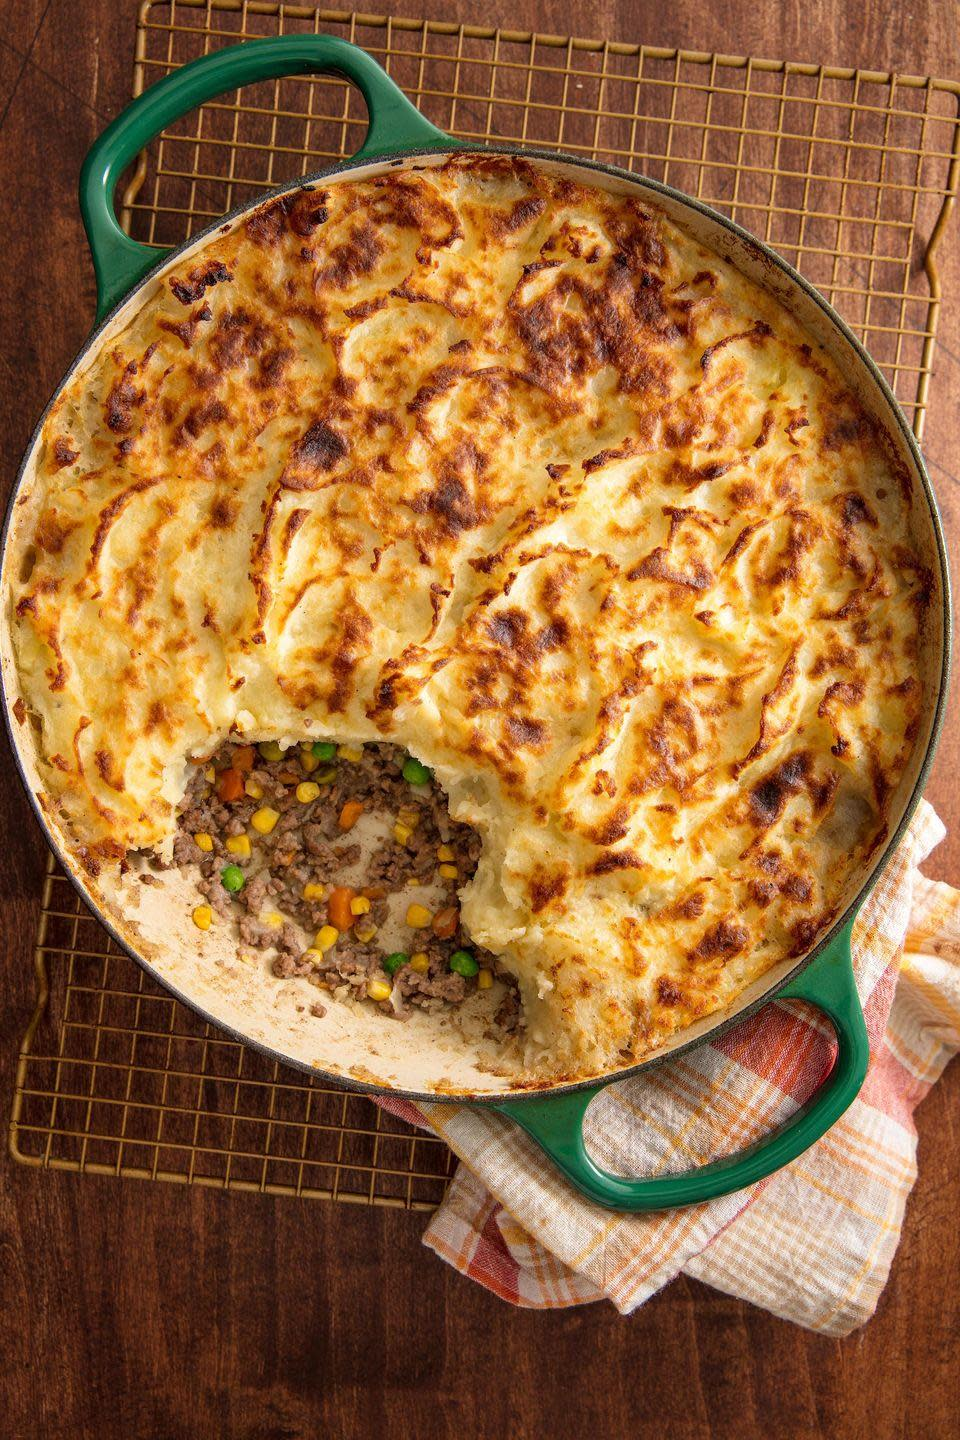 """<p>This is a showstopper.</p><p>Get the recipe from <a href=""""https://www.delish.com/cooking/recipe-ideas/recipes/a57949/easy-shepherds-pie-recipe/"""" rel=""""nofollow noopener"""" target=""""_blank"""" data-ylk=""""slk:Delish."""" class=""""link rapid-noclick-resp"""">Delish.</a></p>"""